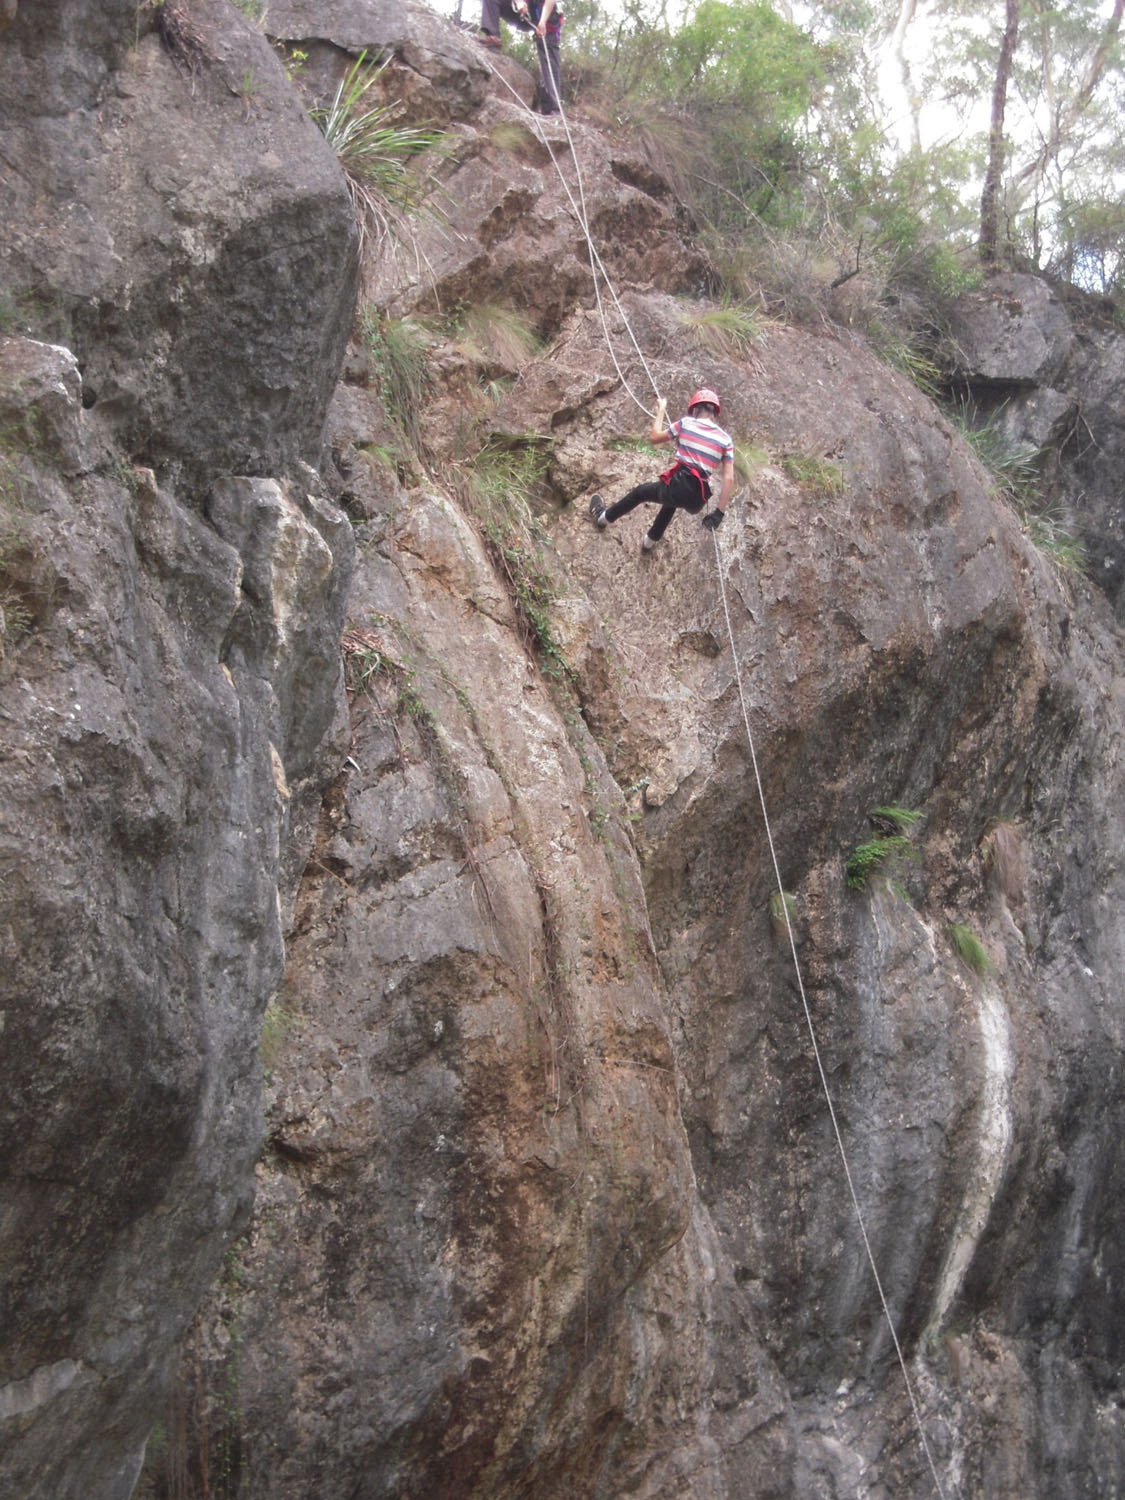 Abseiling - overcoming fear